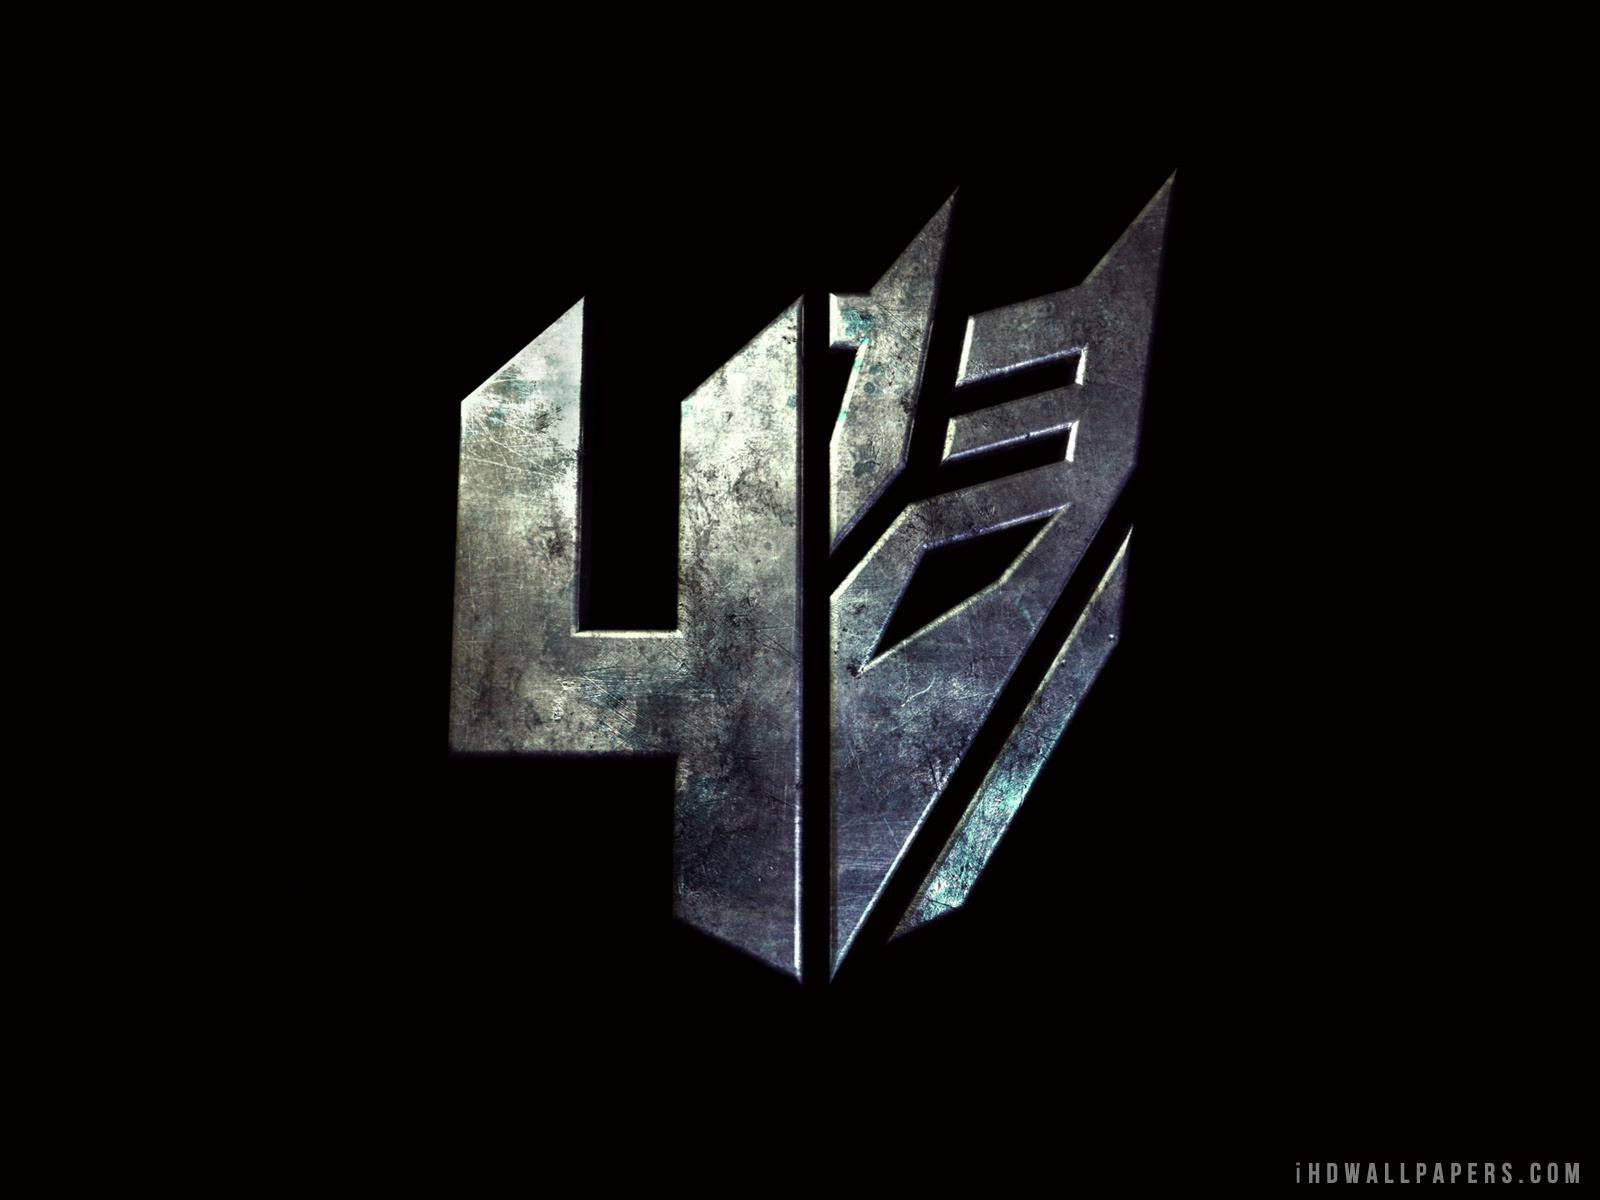 Transformers 4 Wallpapers - WallpaperSafari